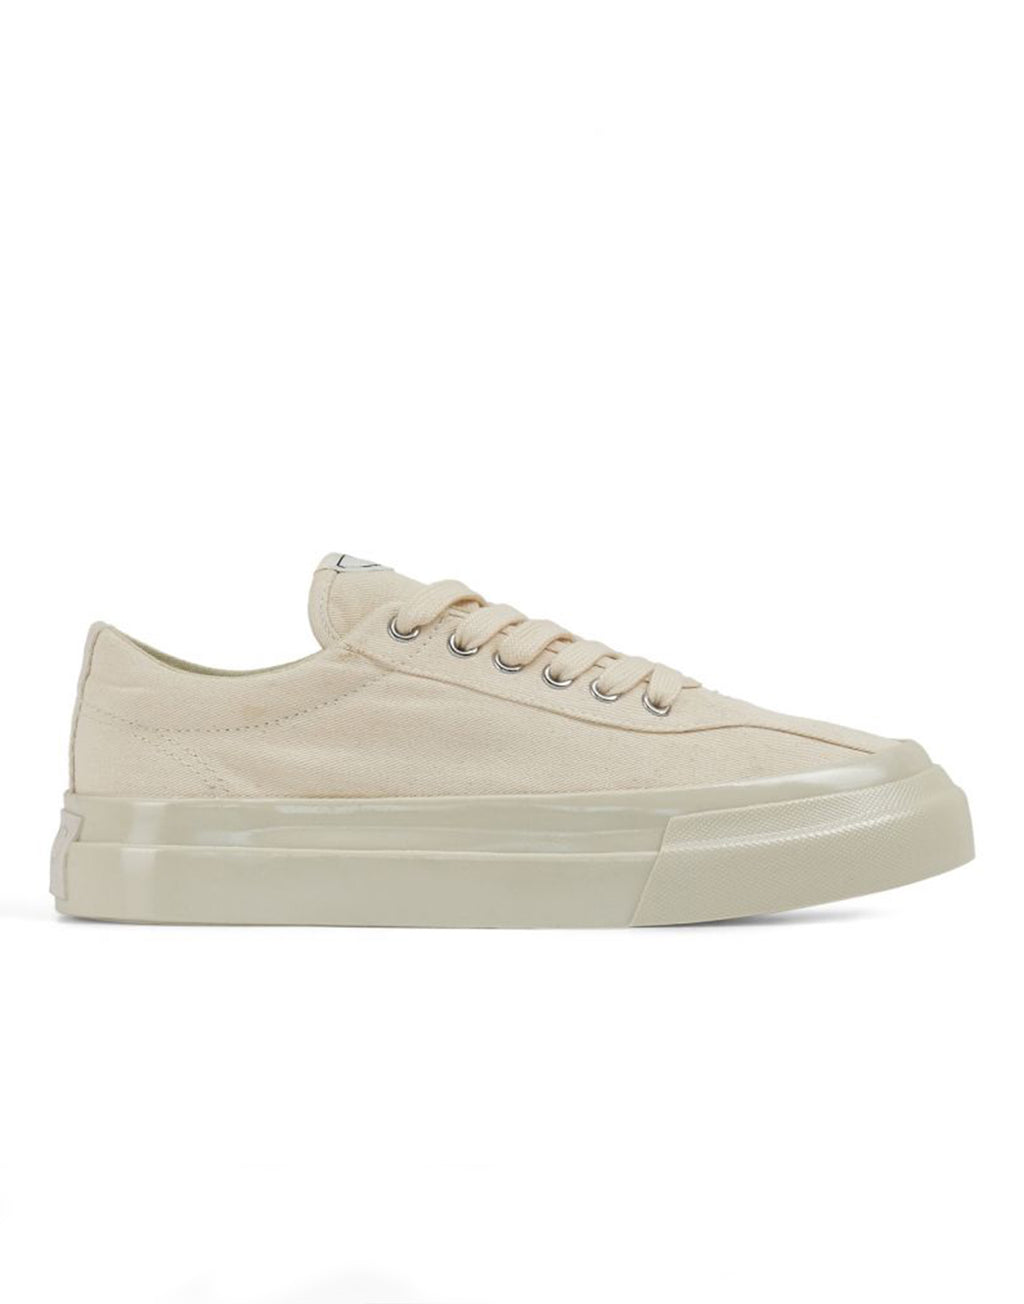 SWC Dellow Shoes Canvas Raw-Ecru